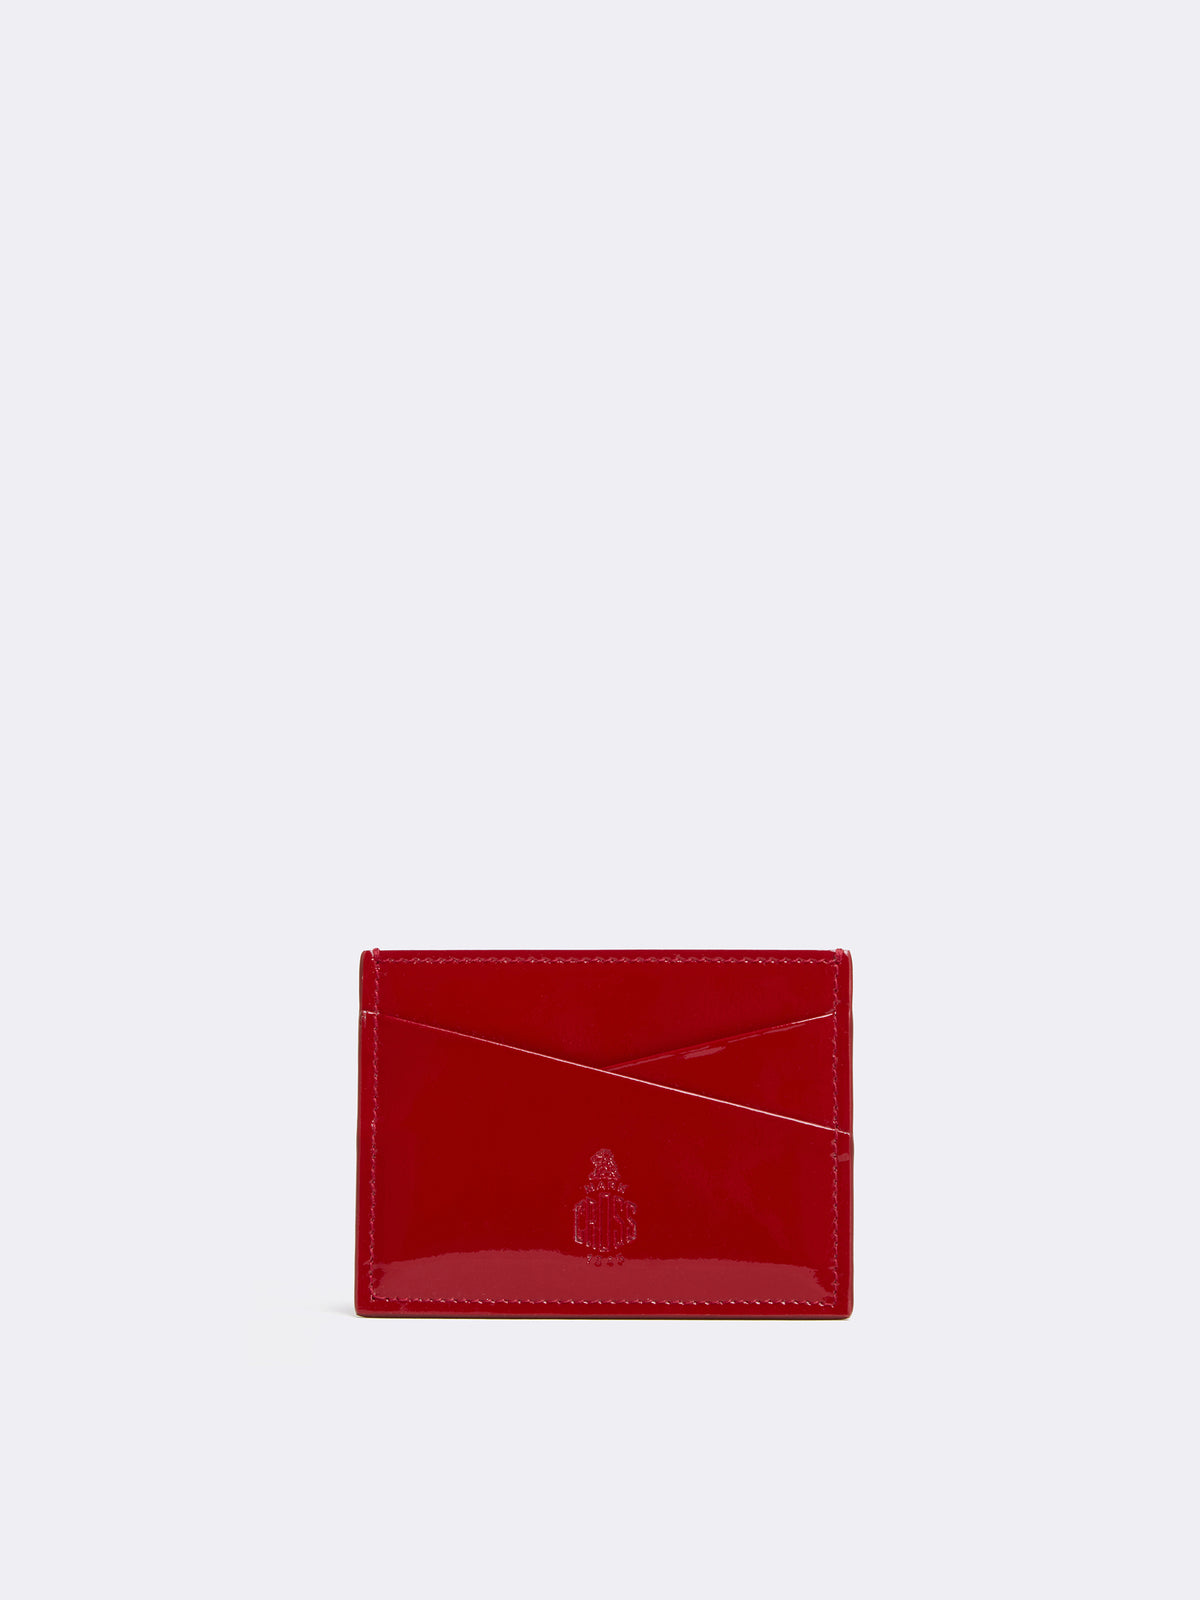 Mark Cross Leather Card Case Soft Patent Red Front